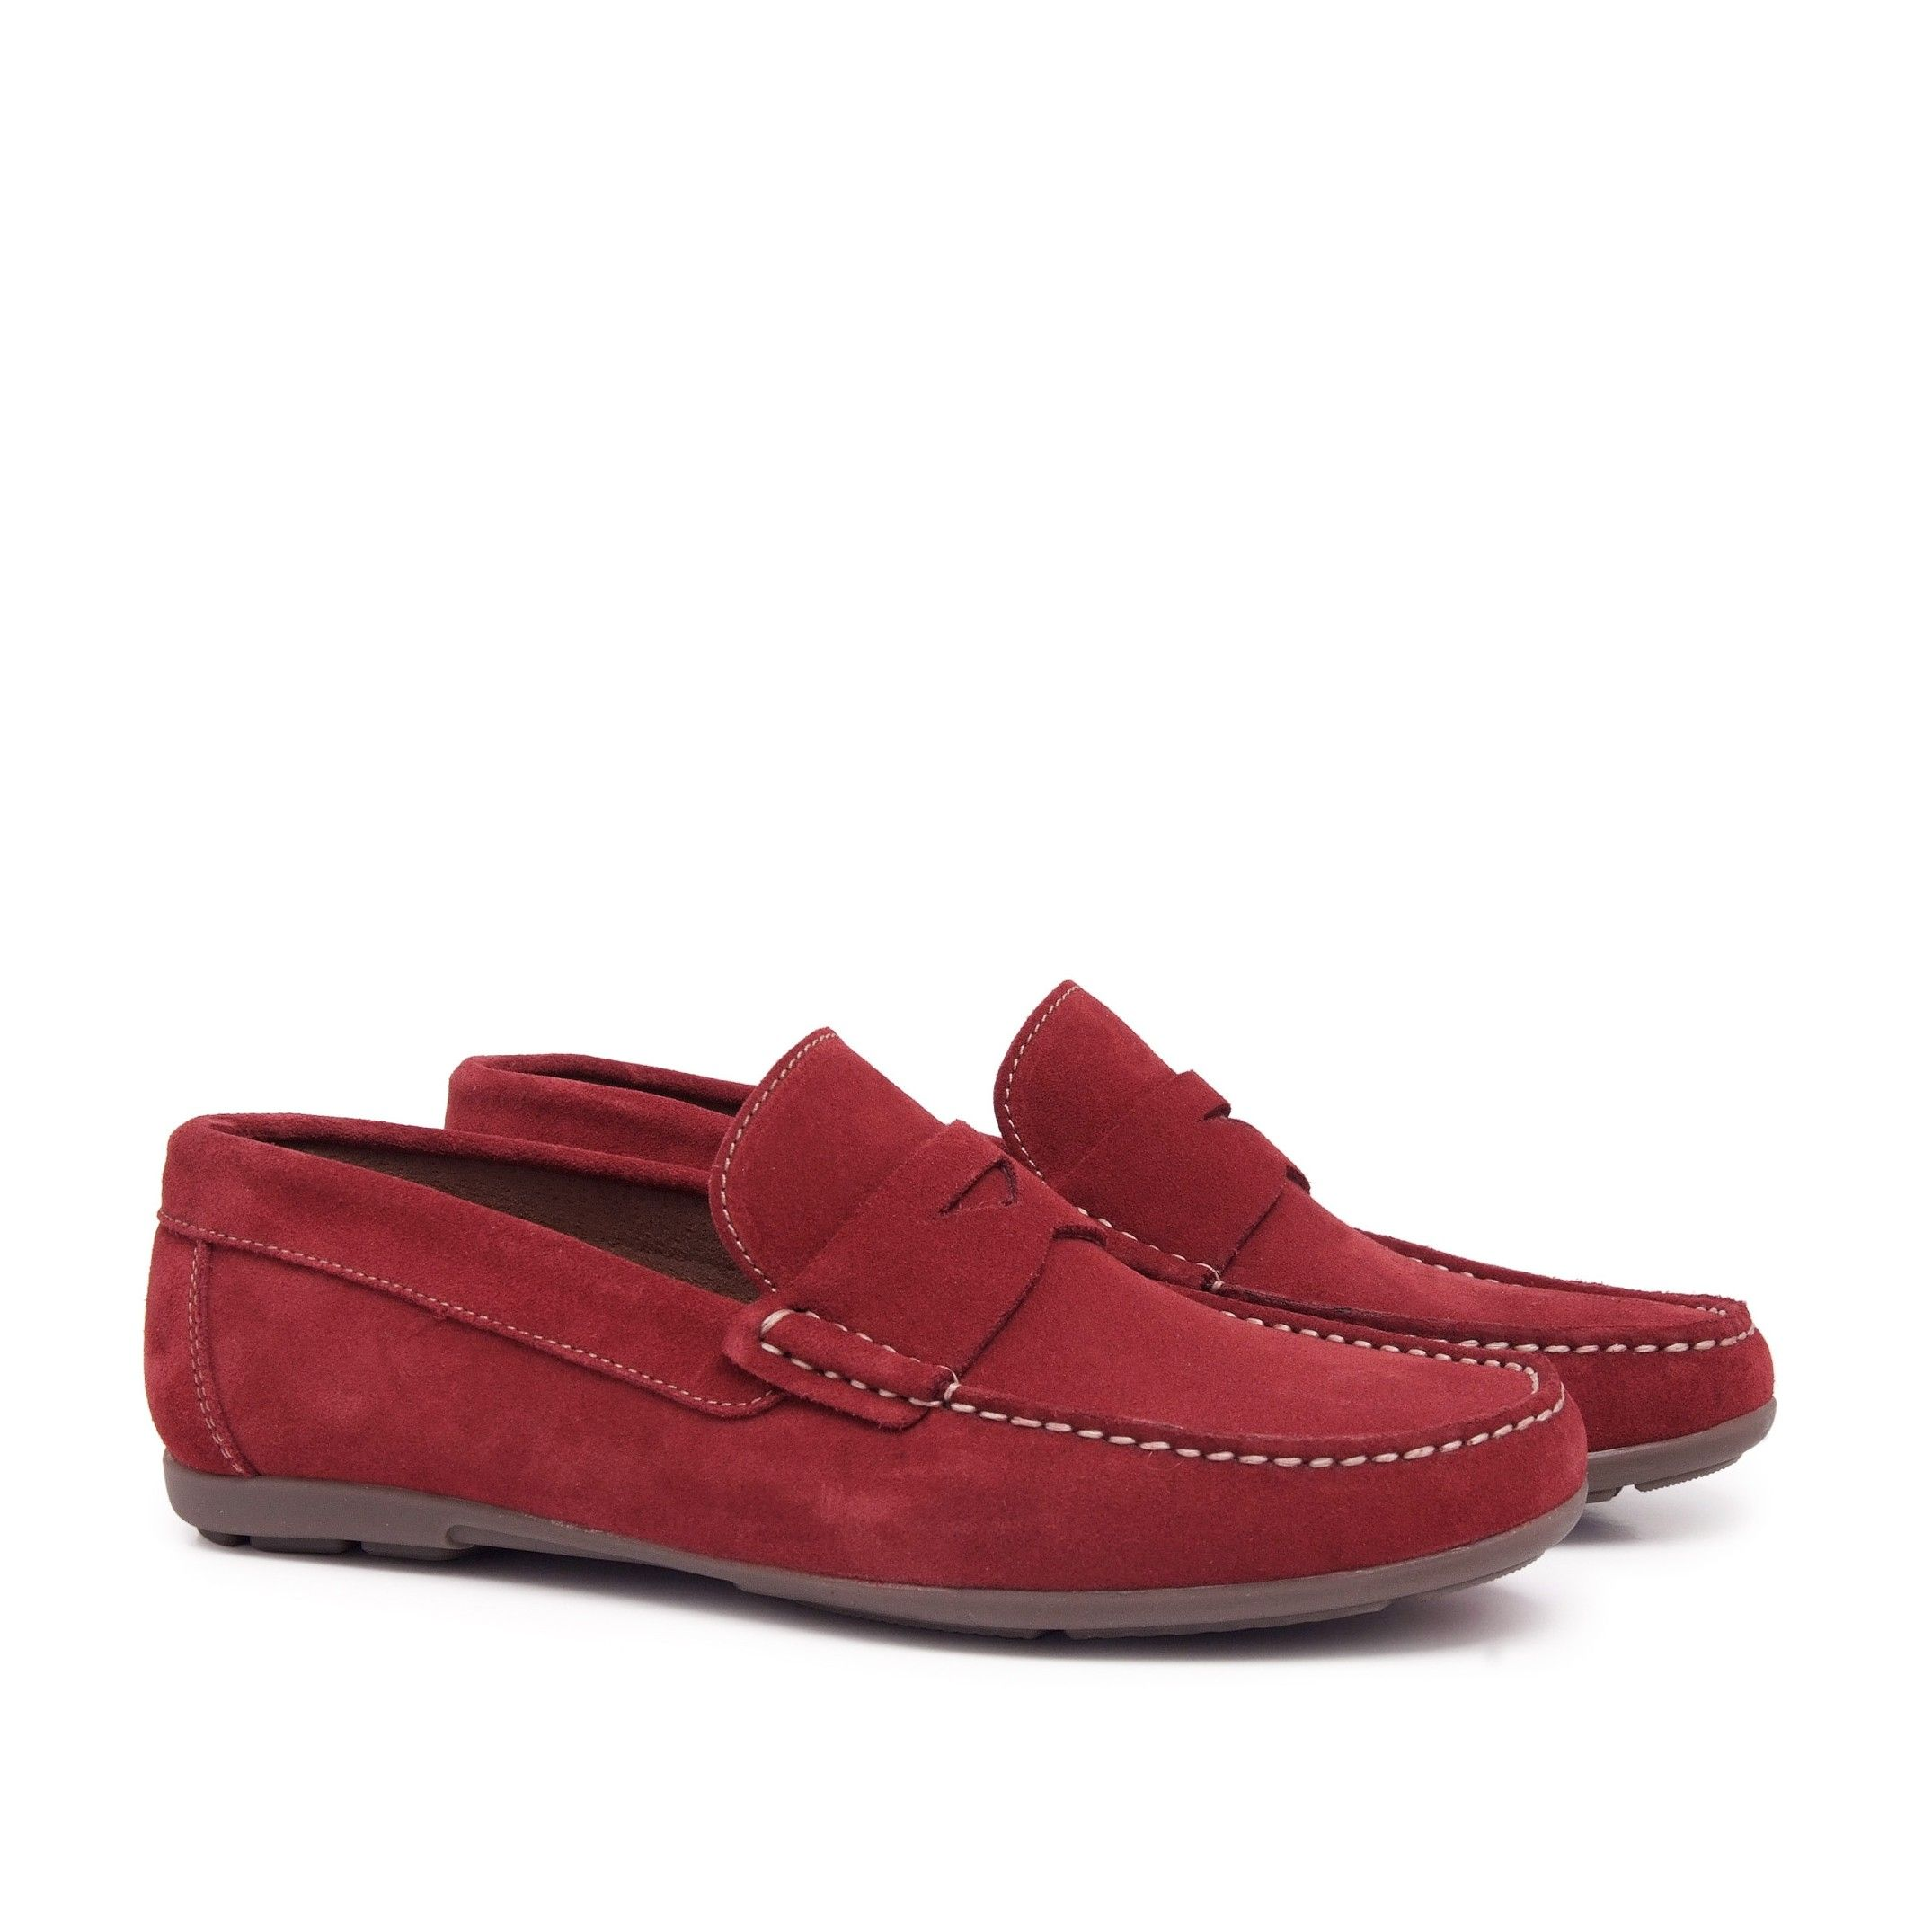 Leather Moccasin with Mask for Men